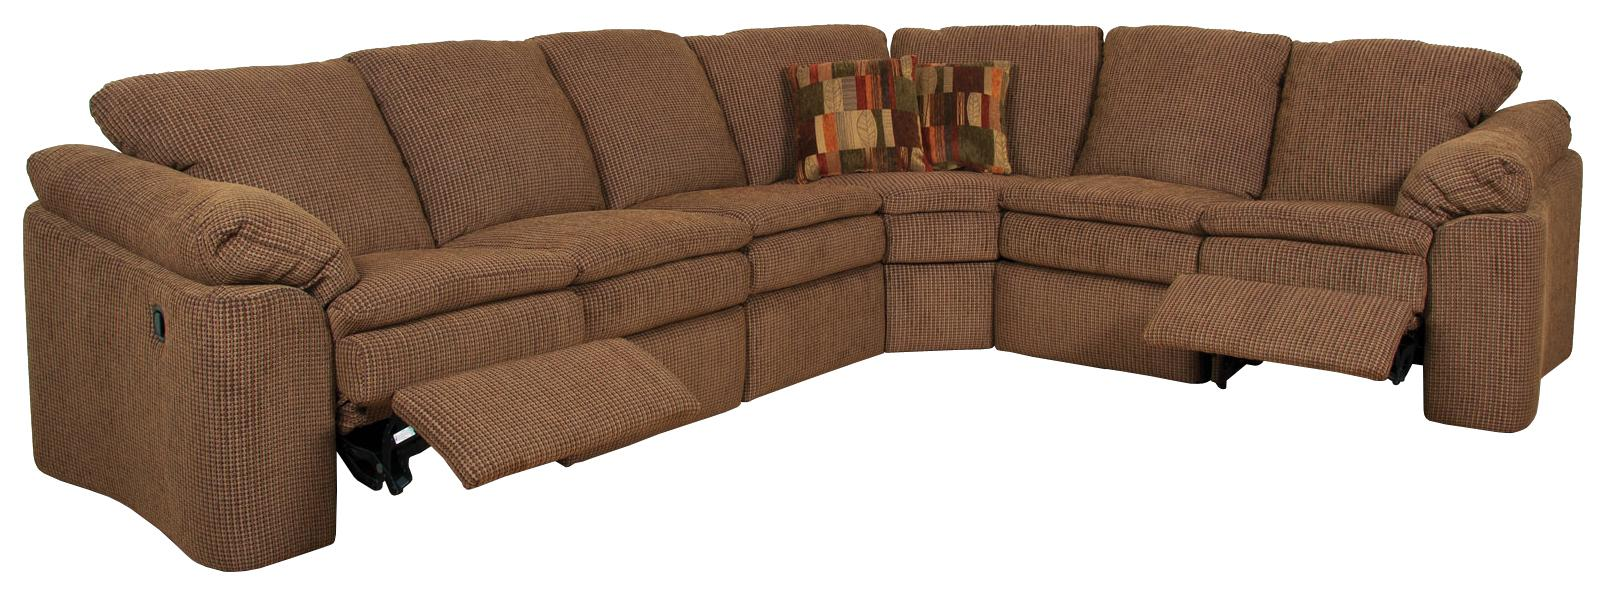 Seneca Falls Six Person Reclining Sectional Sofa by England at Furniture and ApplianceMart